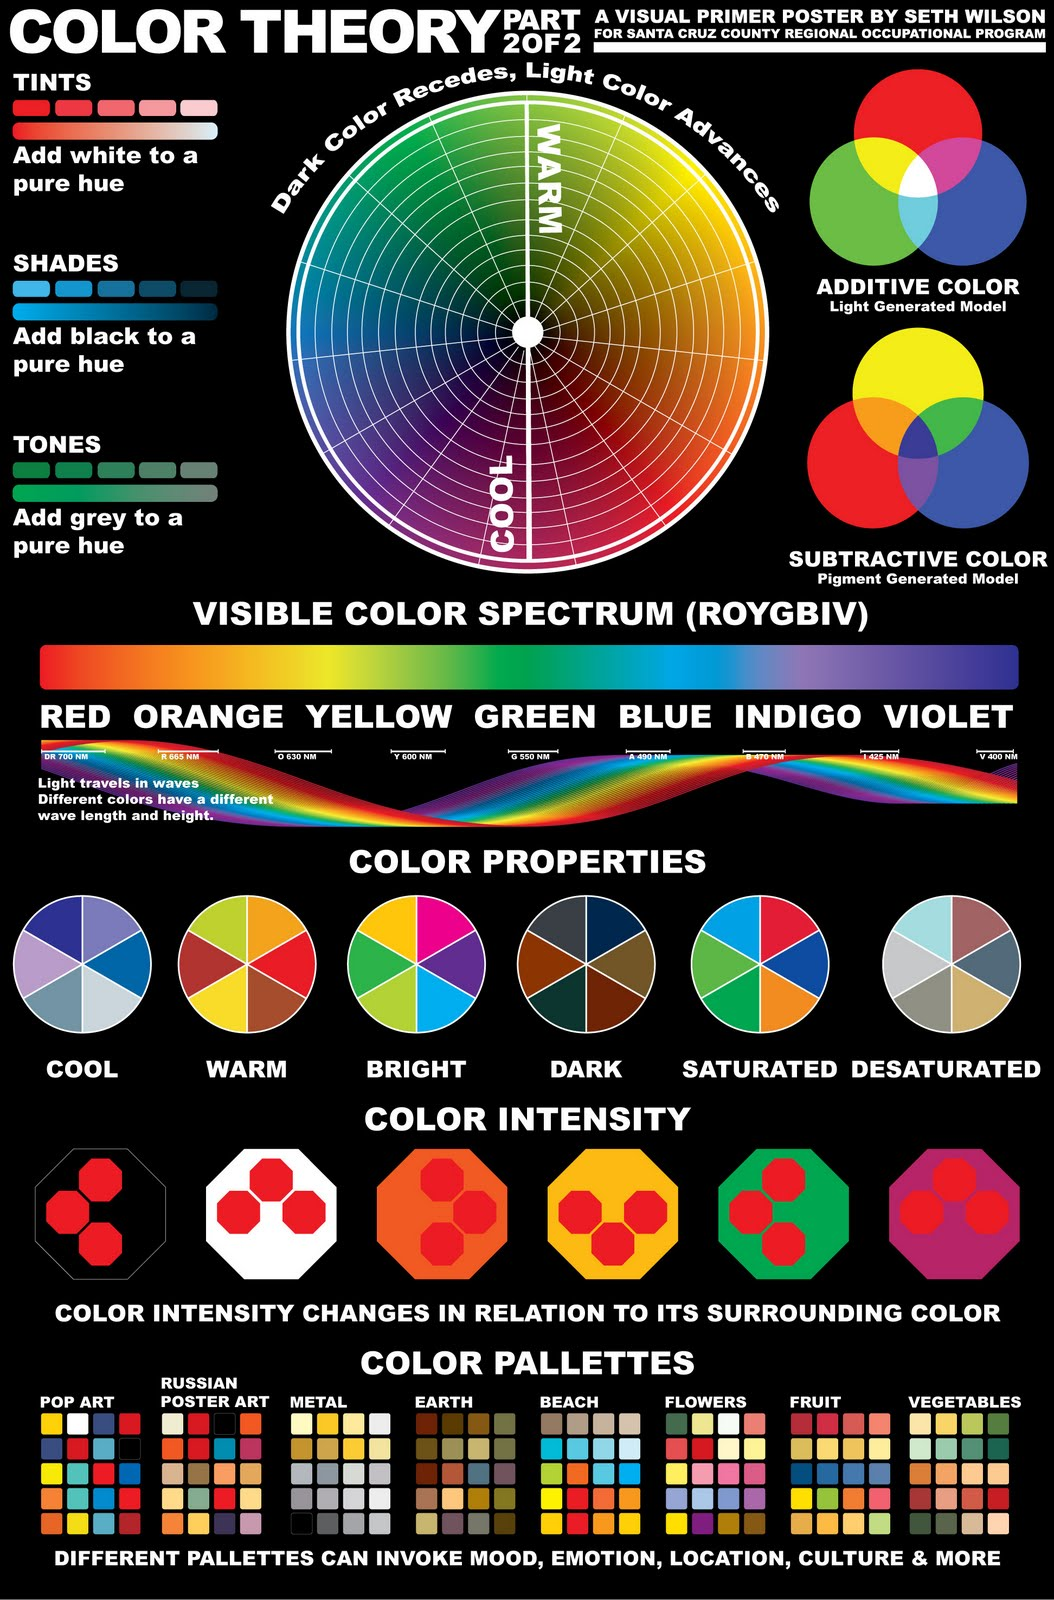 colour colortheory theory wheel poster mixing colors chart film artist psychology painting types therory different designs part typography graphic infographic